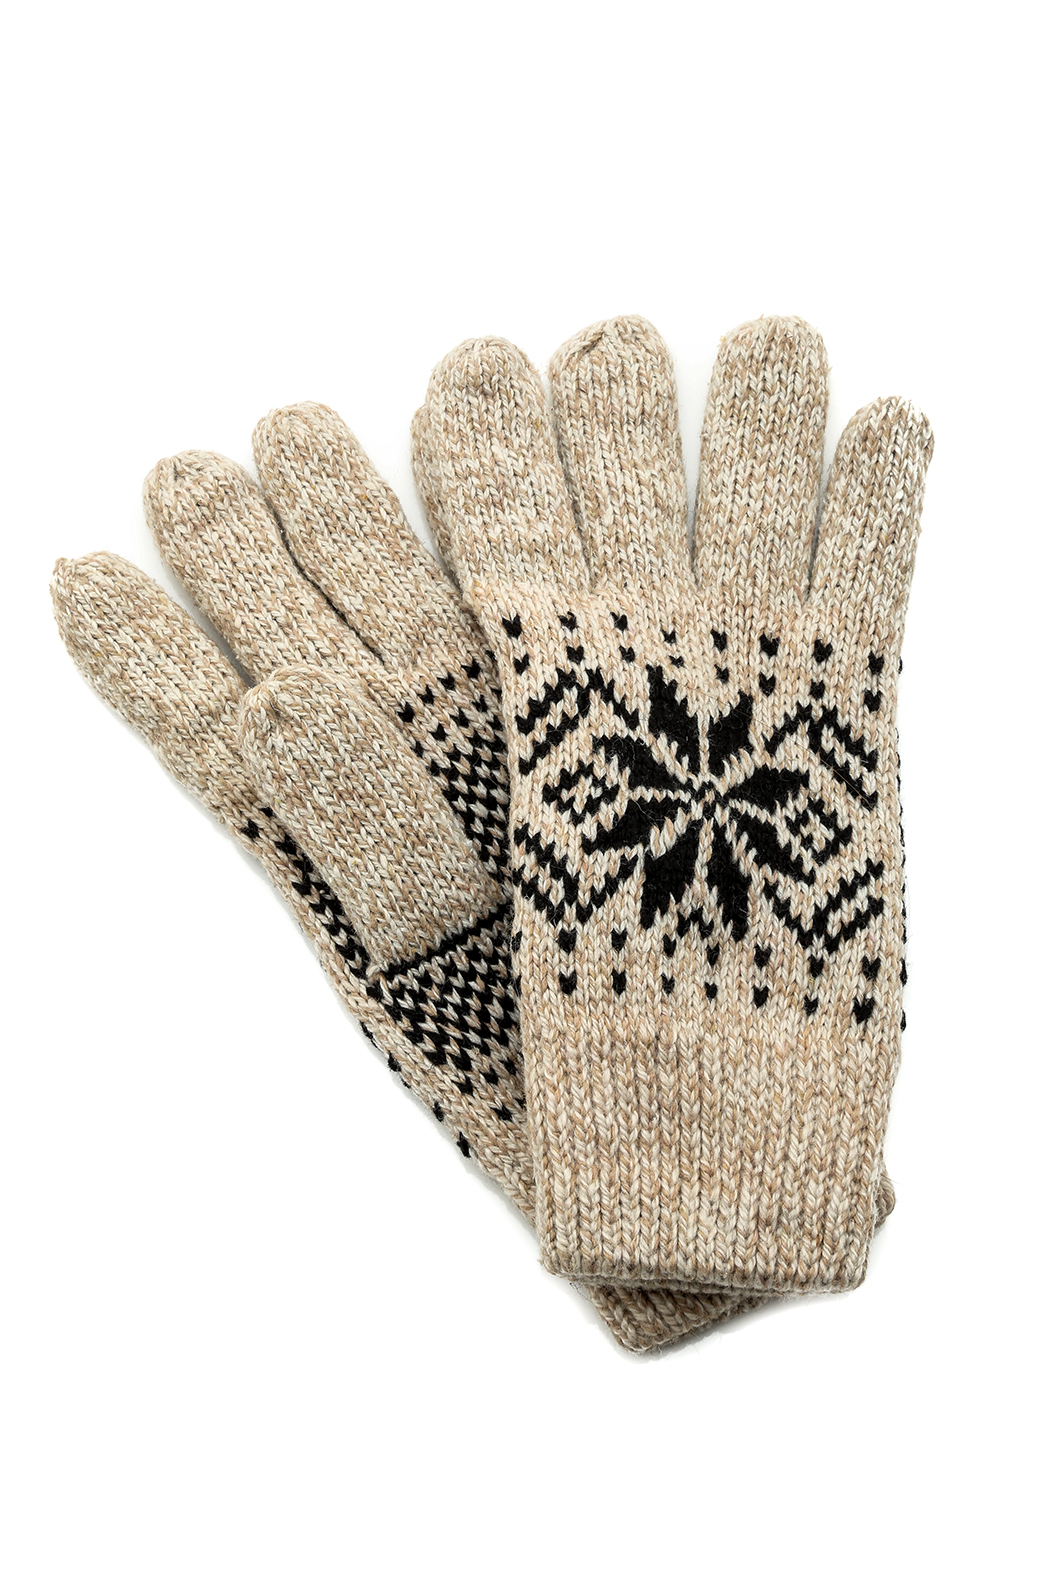 Fort Greene General Store Knit Snowflake Gloves - Front Cropped Image